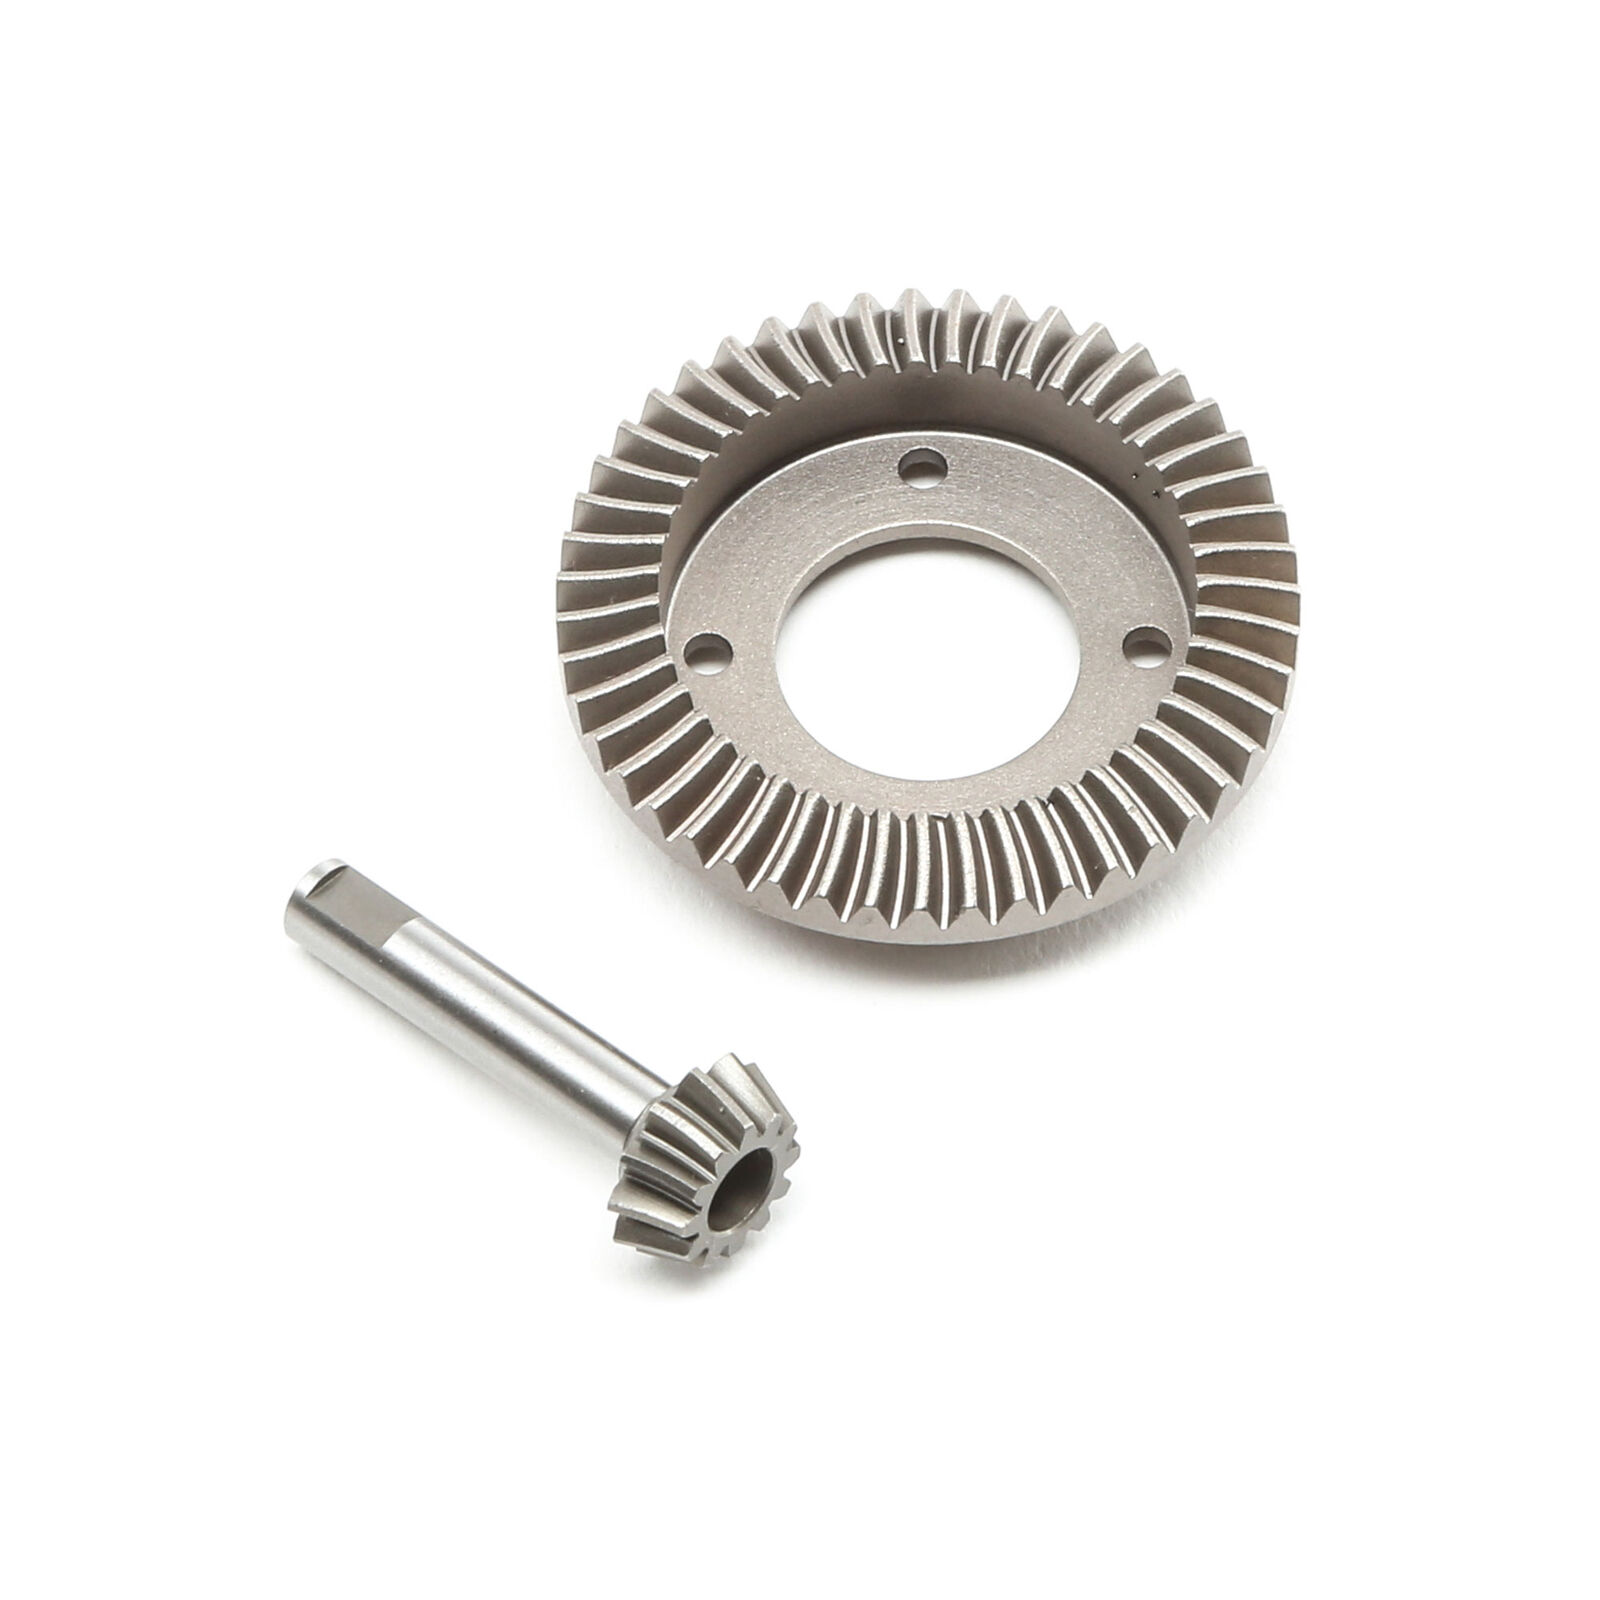 Rear 47T Diff Gear and 12T Pinion: 8, 8T RTR